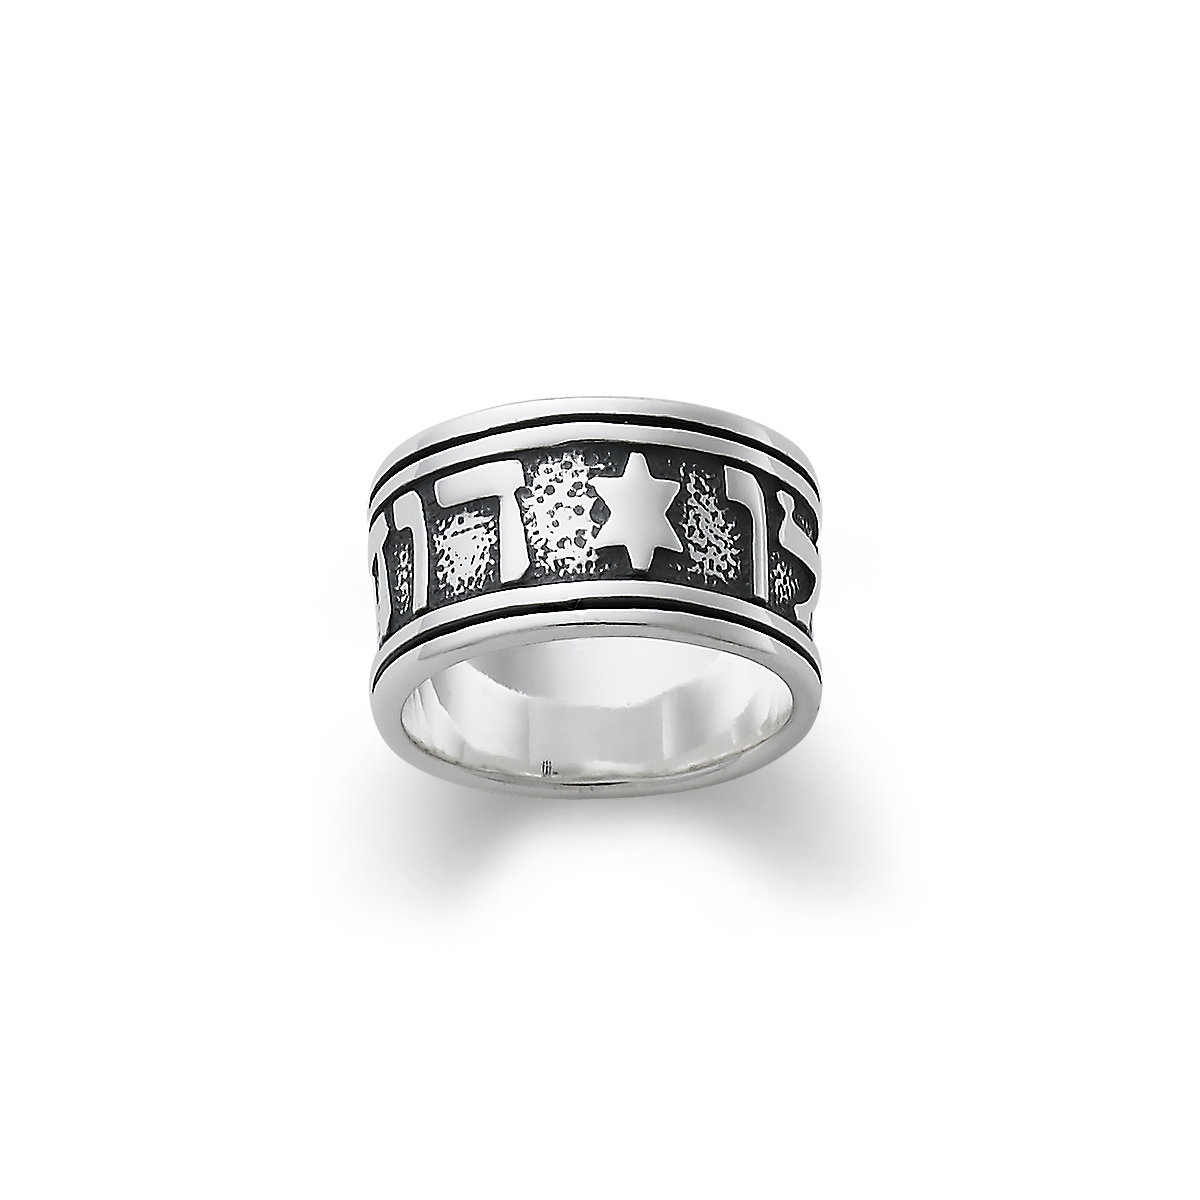 ring rings band gettyimages couple ideas every for engraving meaningful wedding